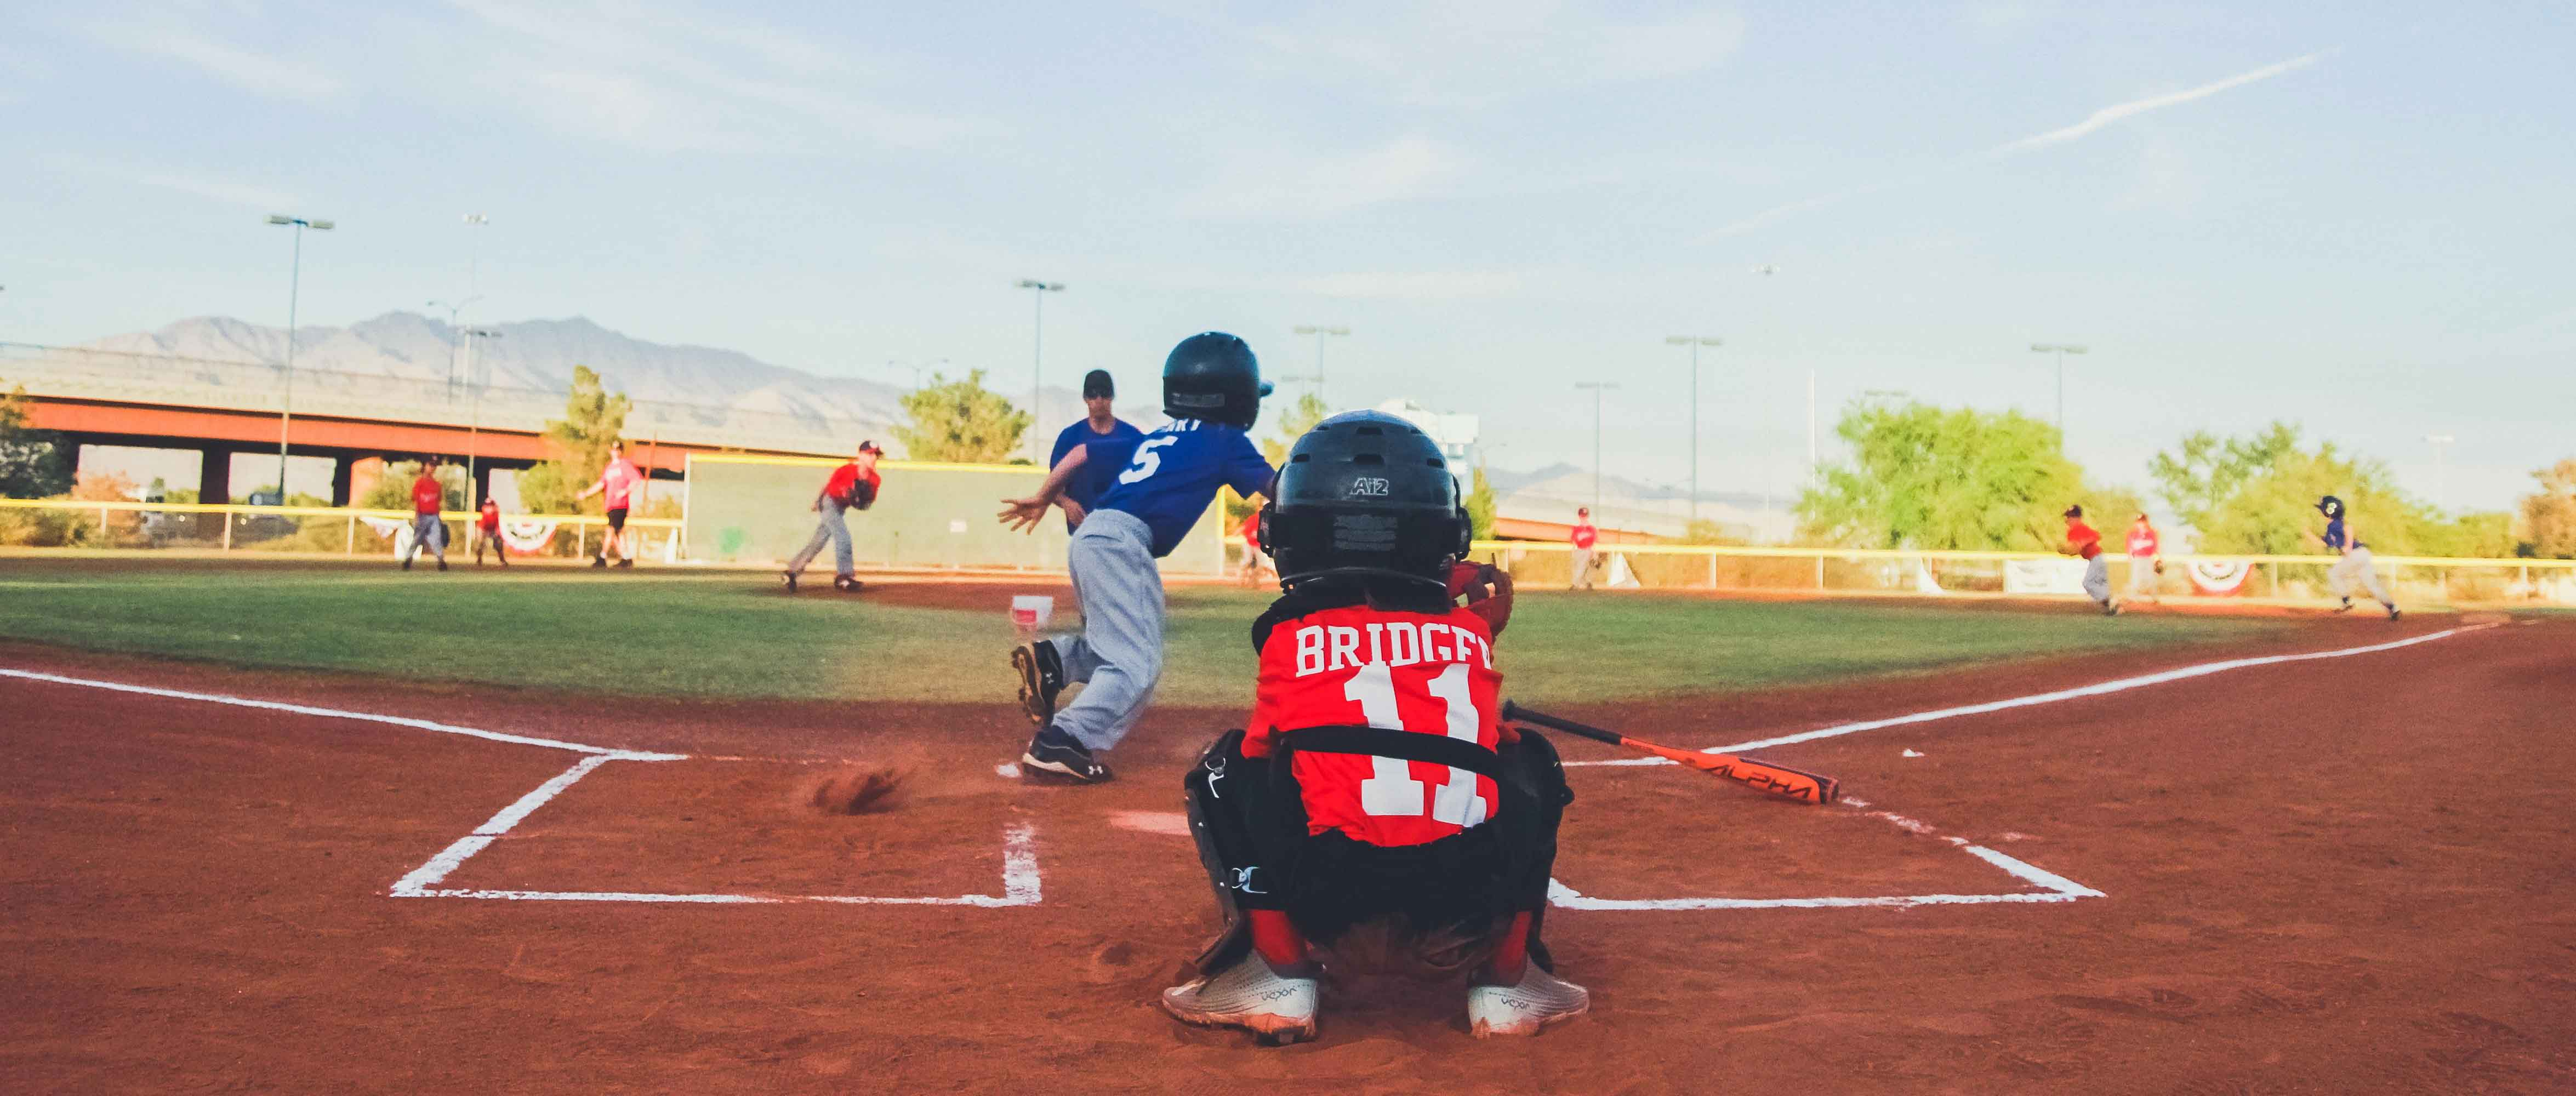 Calling it Quits: Why Kids Are Dropping Out of Youth Sports in Droves